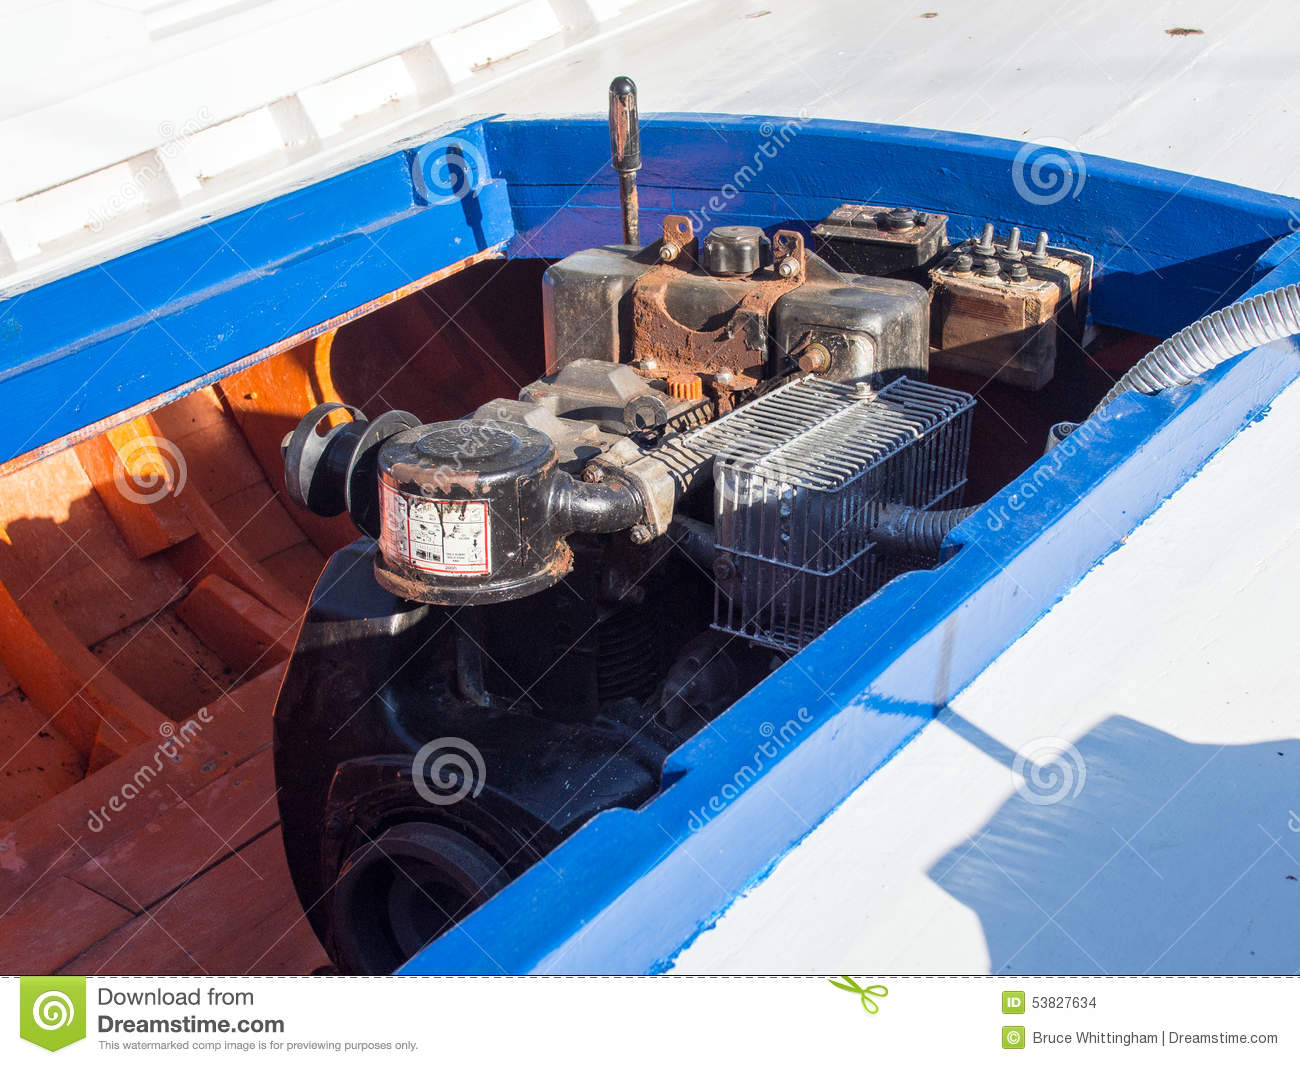 Diesel Boat Engine In Greek Fishing Boat Stock Photo - Image